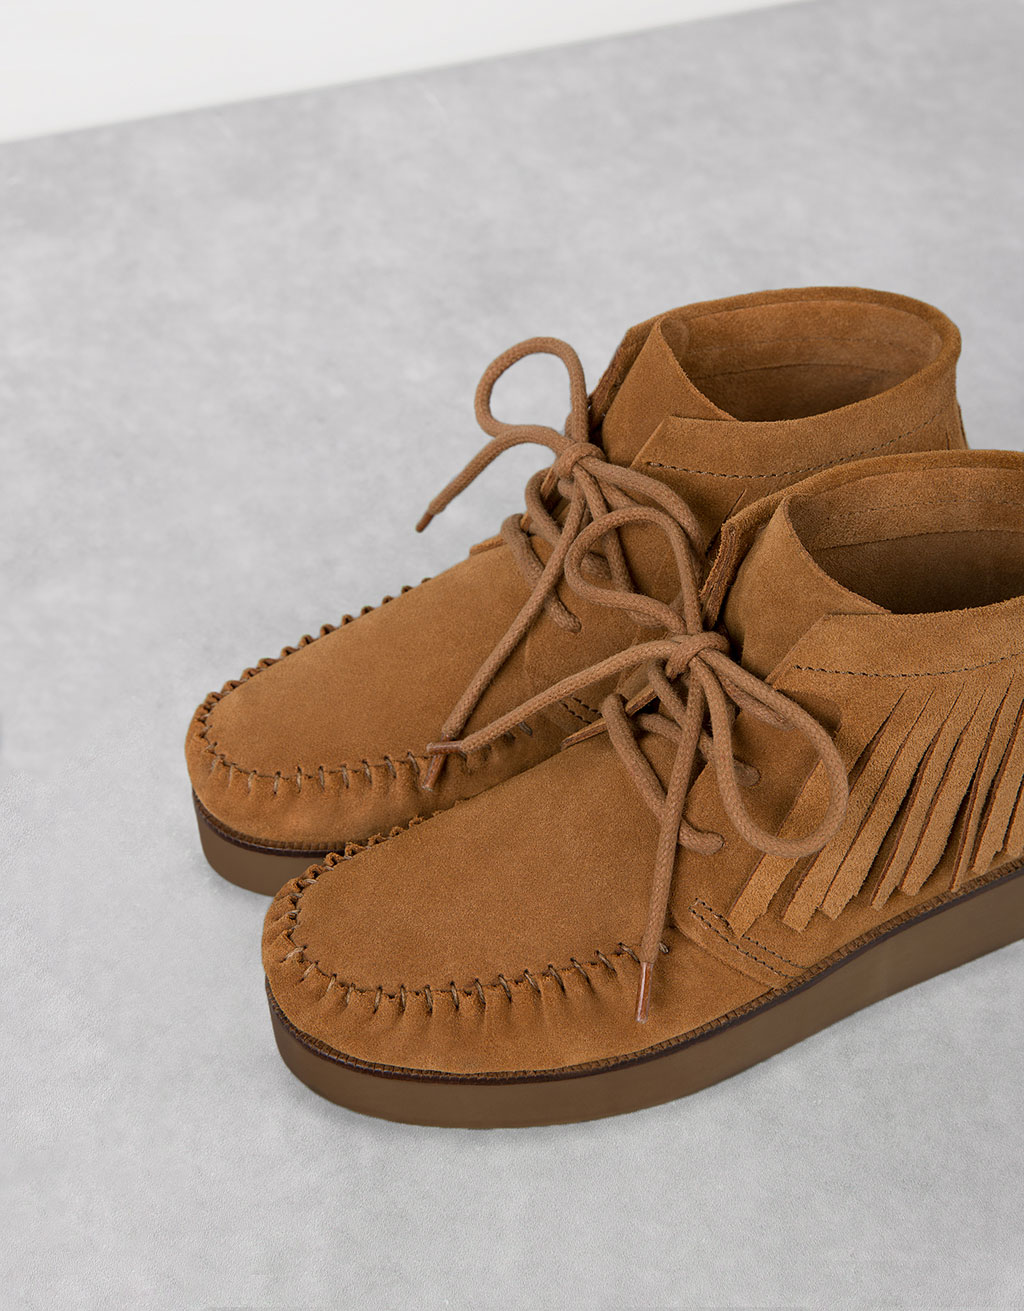 LEATHER platform ankle boots with fringe detail